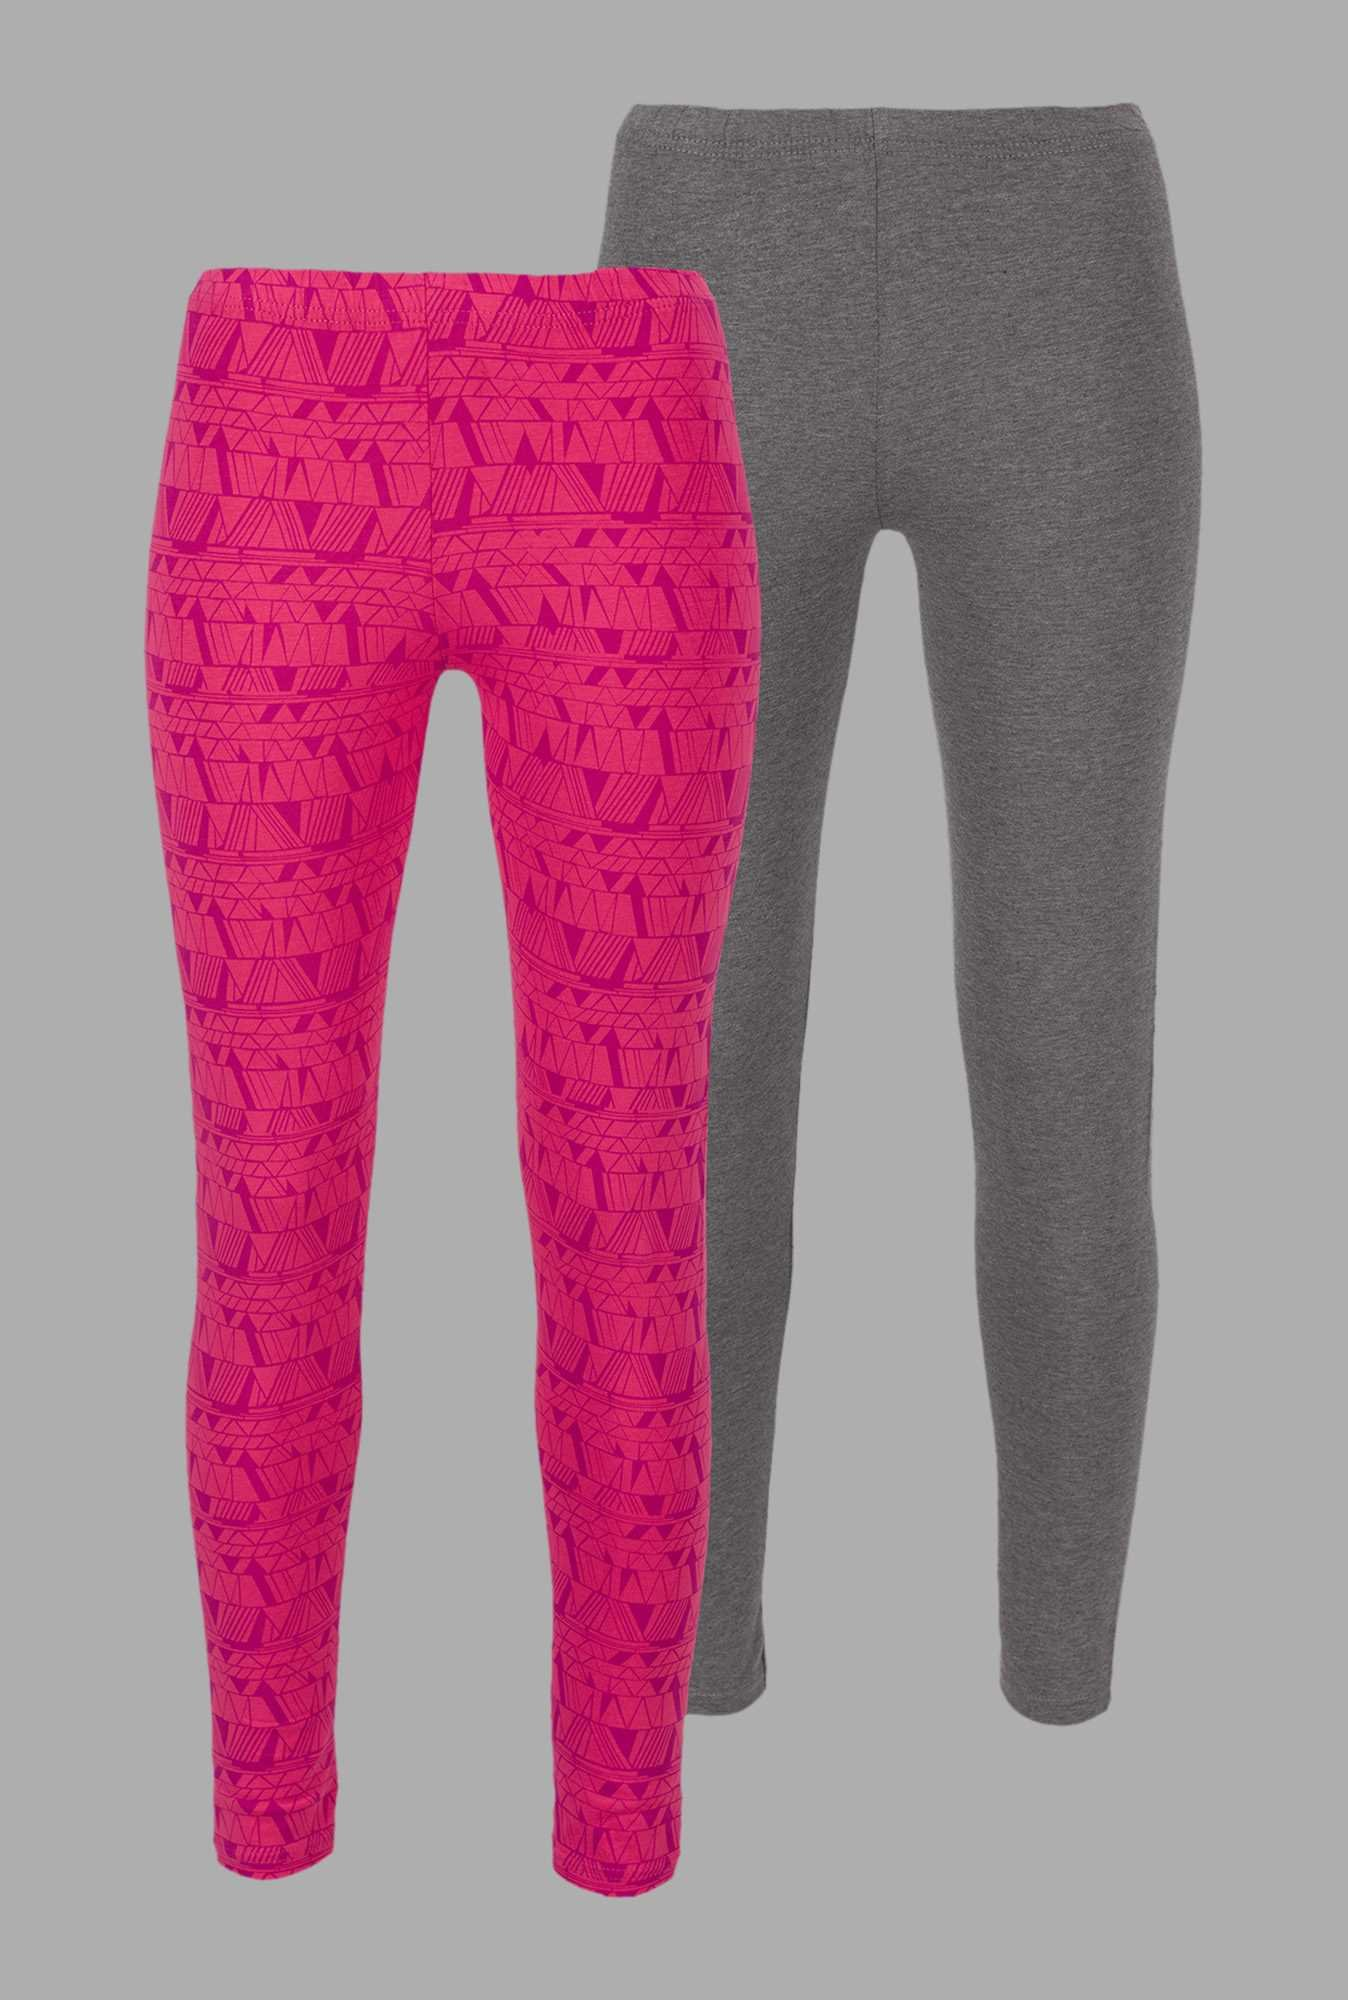 Doone Grey & Pink Printed Training Pants (Set Of 2)